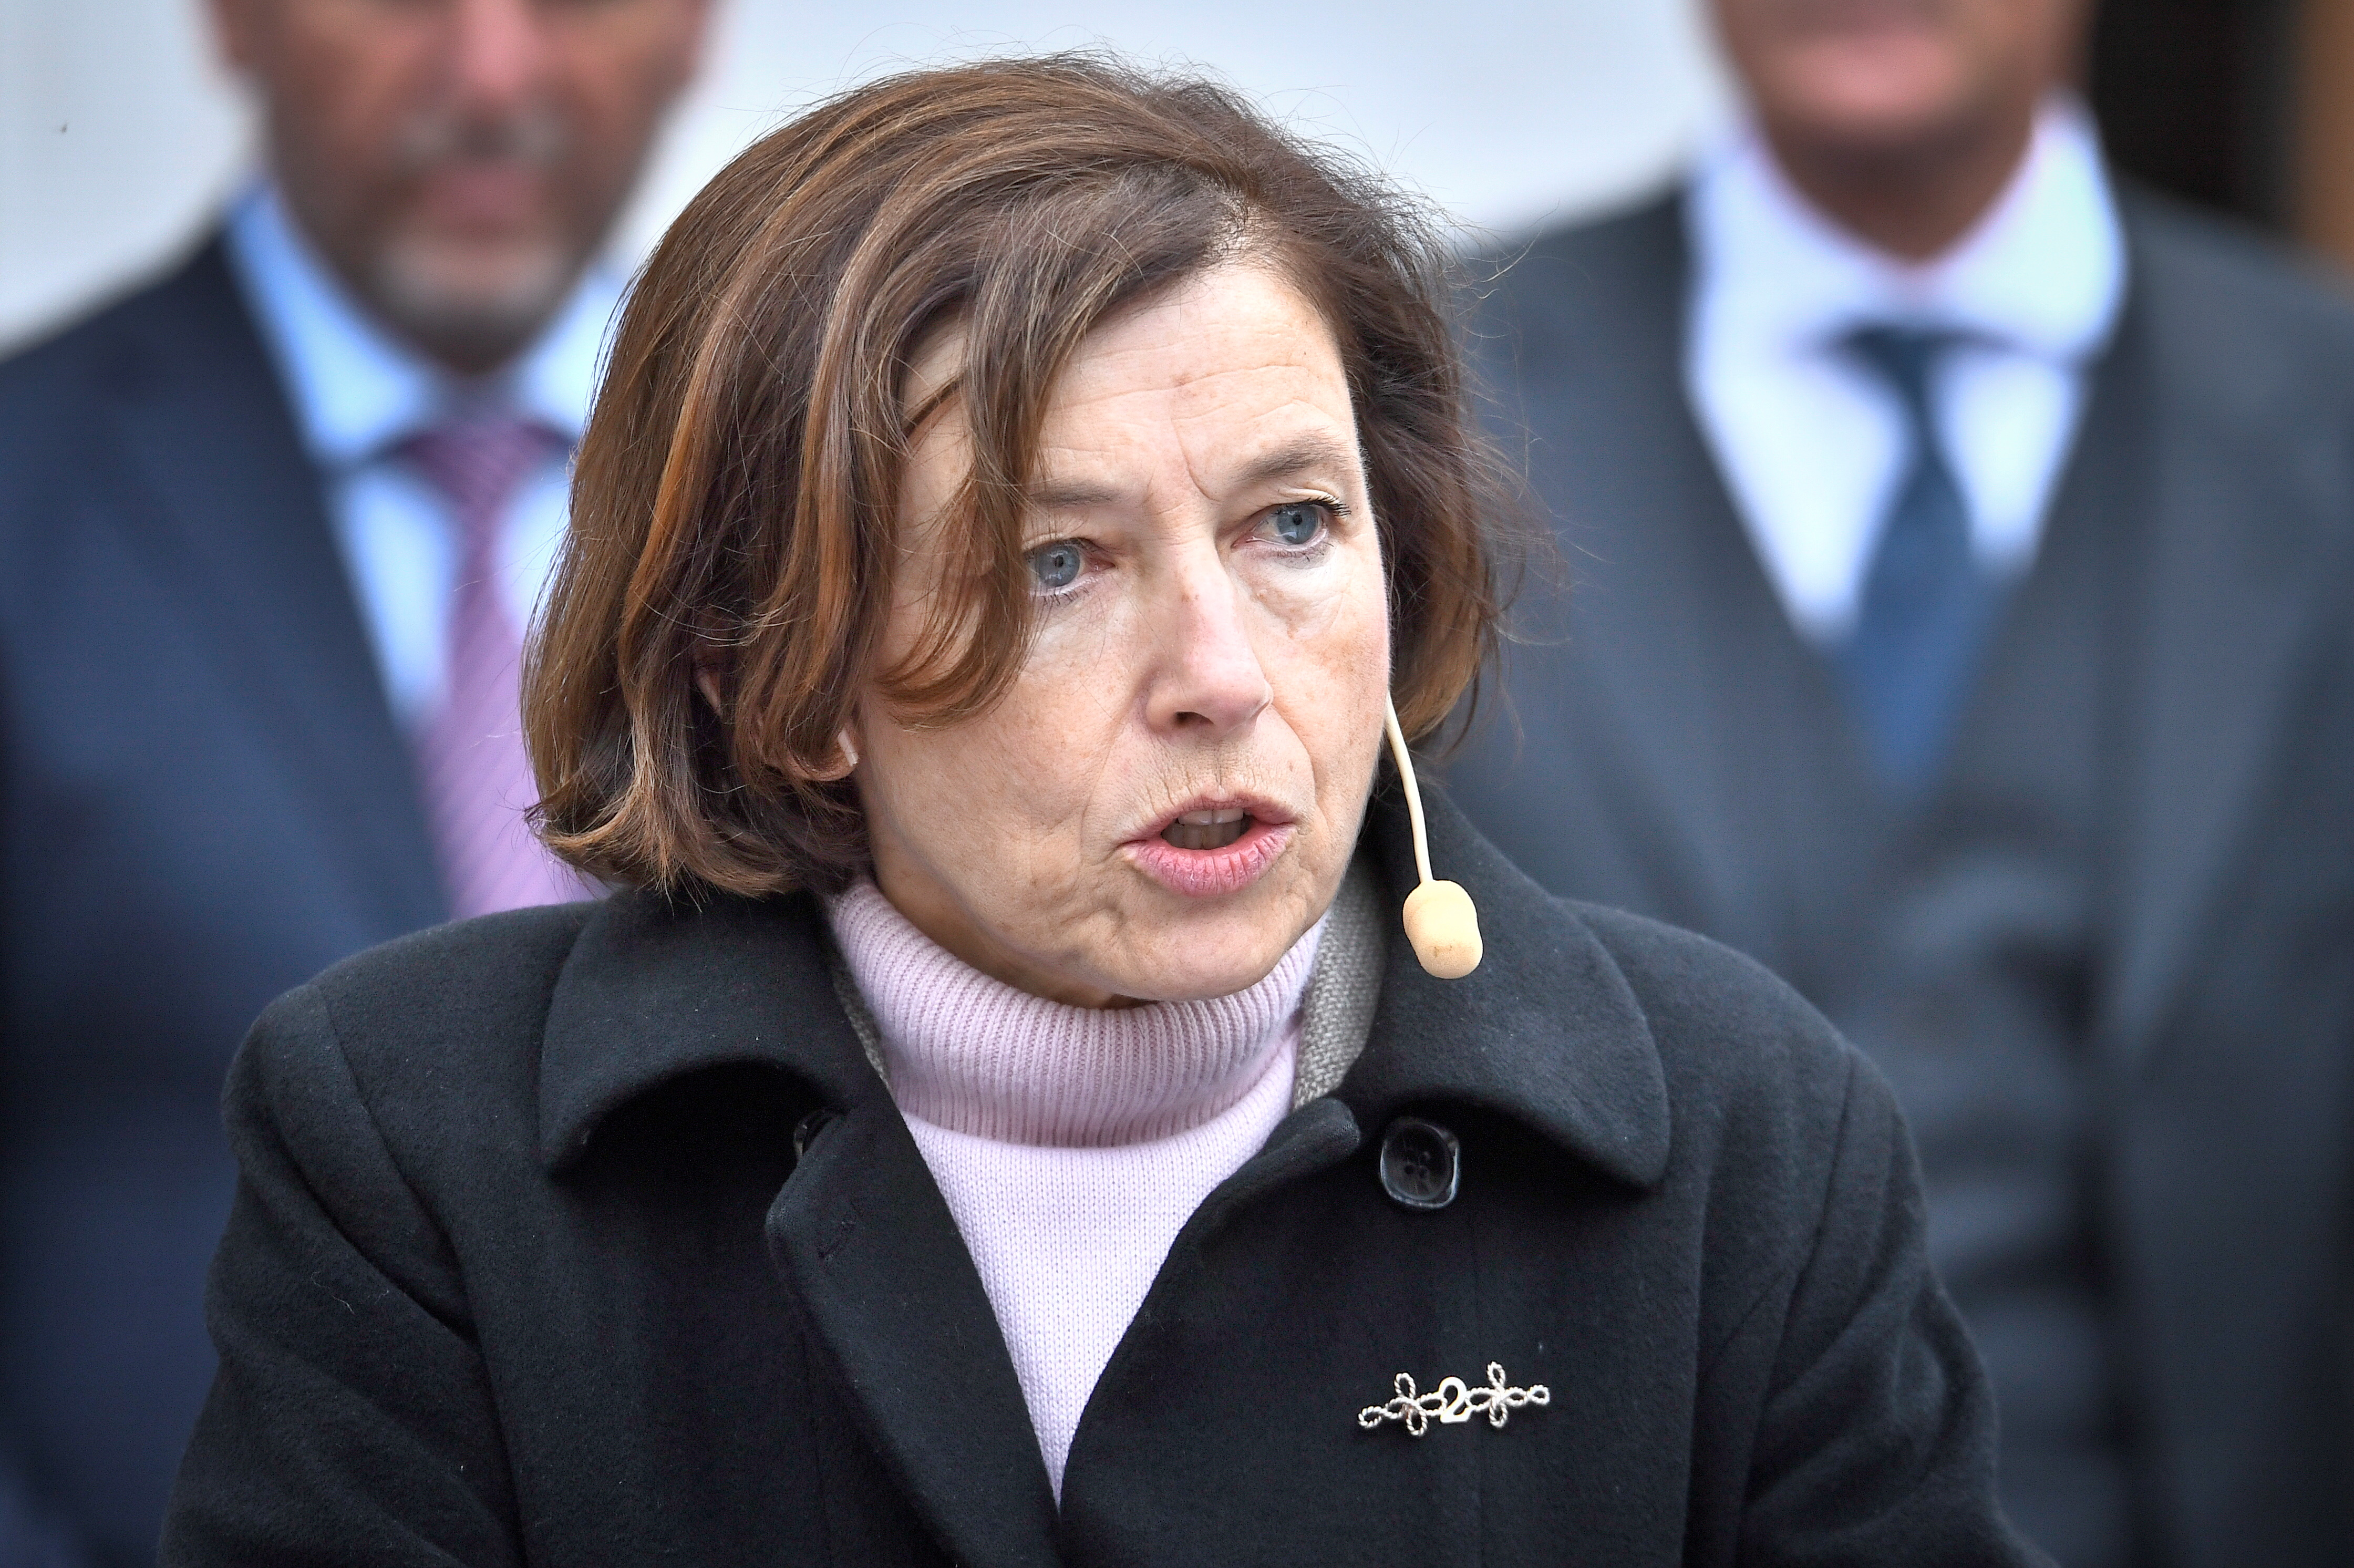 France's Minister of Defense Florence Parly speaks during a press briefing at Karlberg Castle in Stockholm, Sweden, September 24, 2021. Claudio Bresciani/TT News Agency via REUTERS.